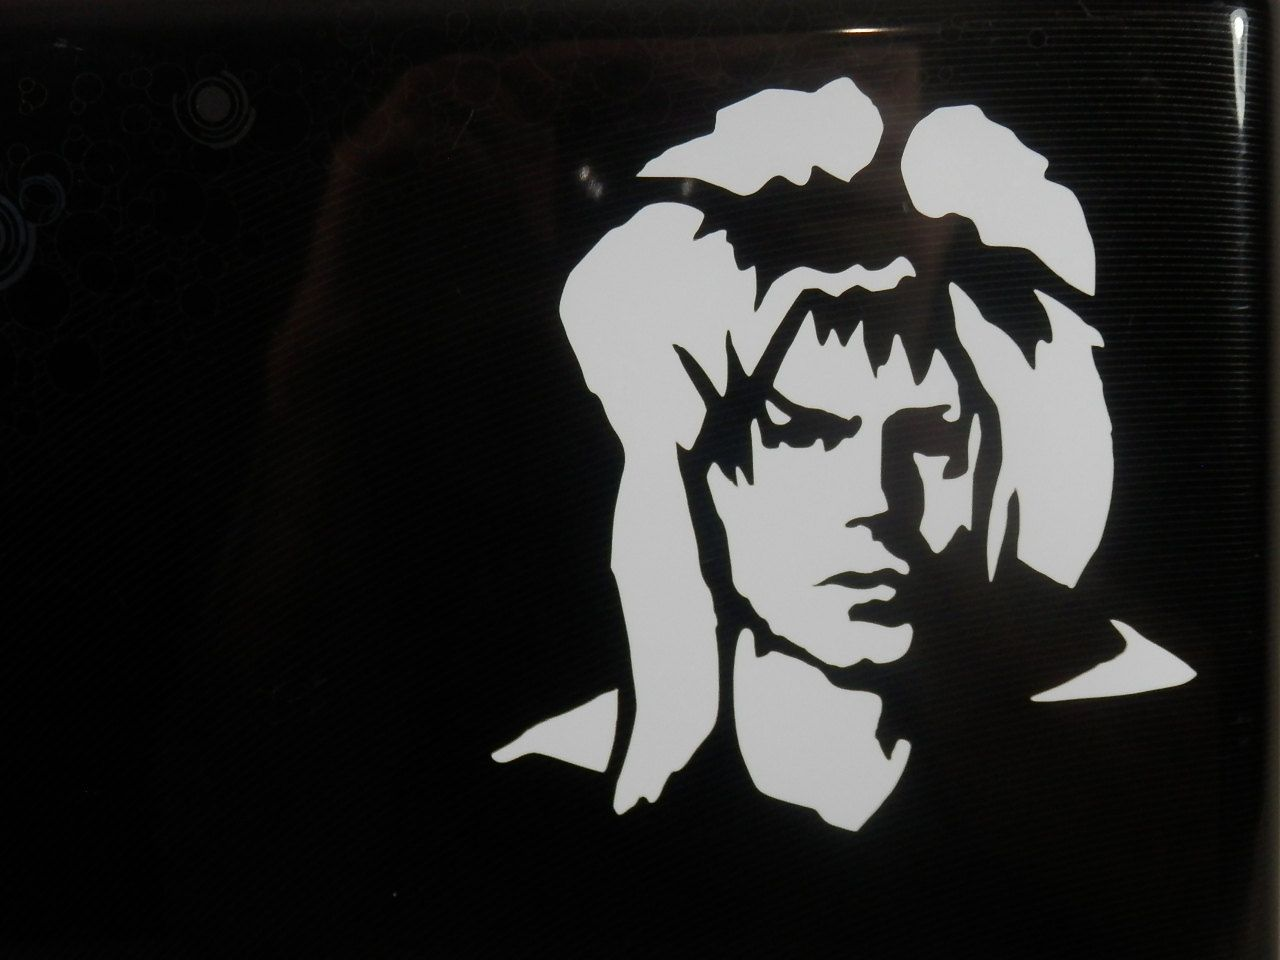 David Bowie Labyrinth Decal Vinyl Bumper Sticker Jareth ...